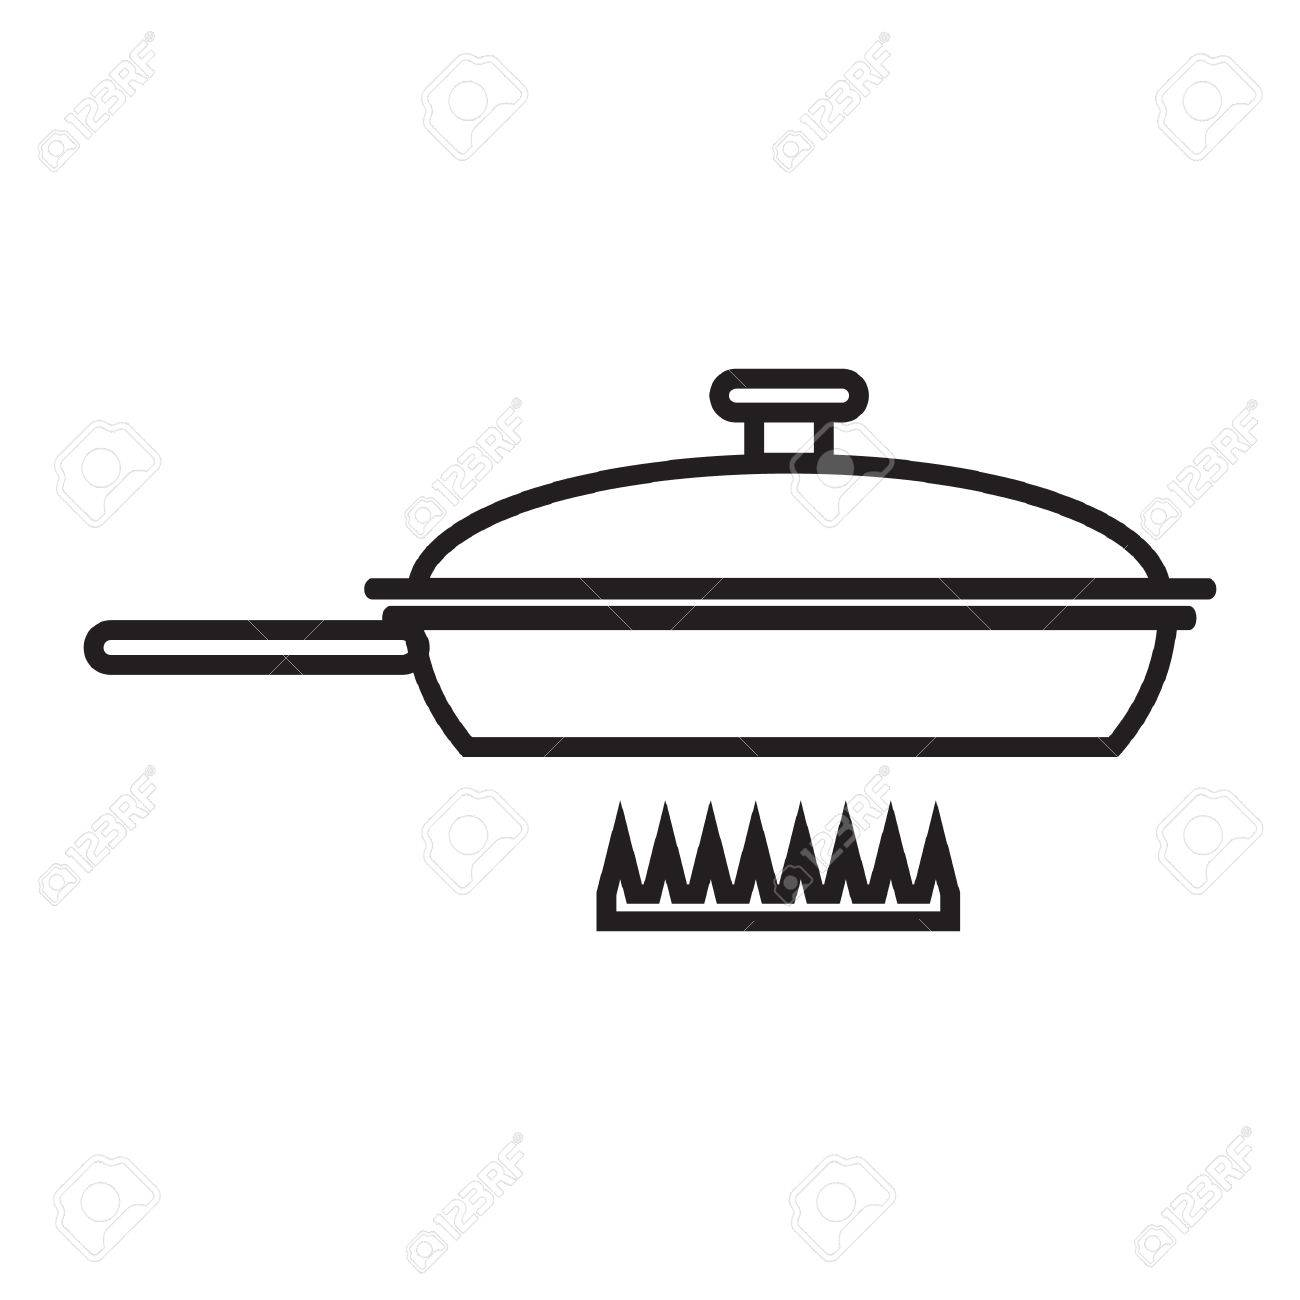 Pot Clipart Outline - Pan Clipart Black And White - Free Transparent PNG  Clipart Images Download